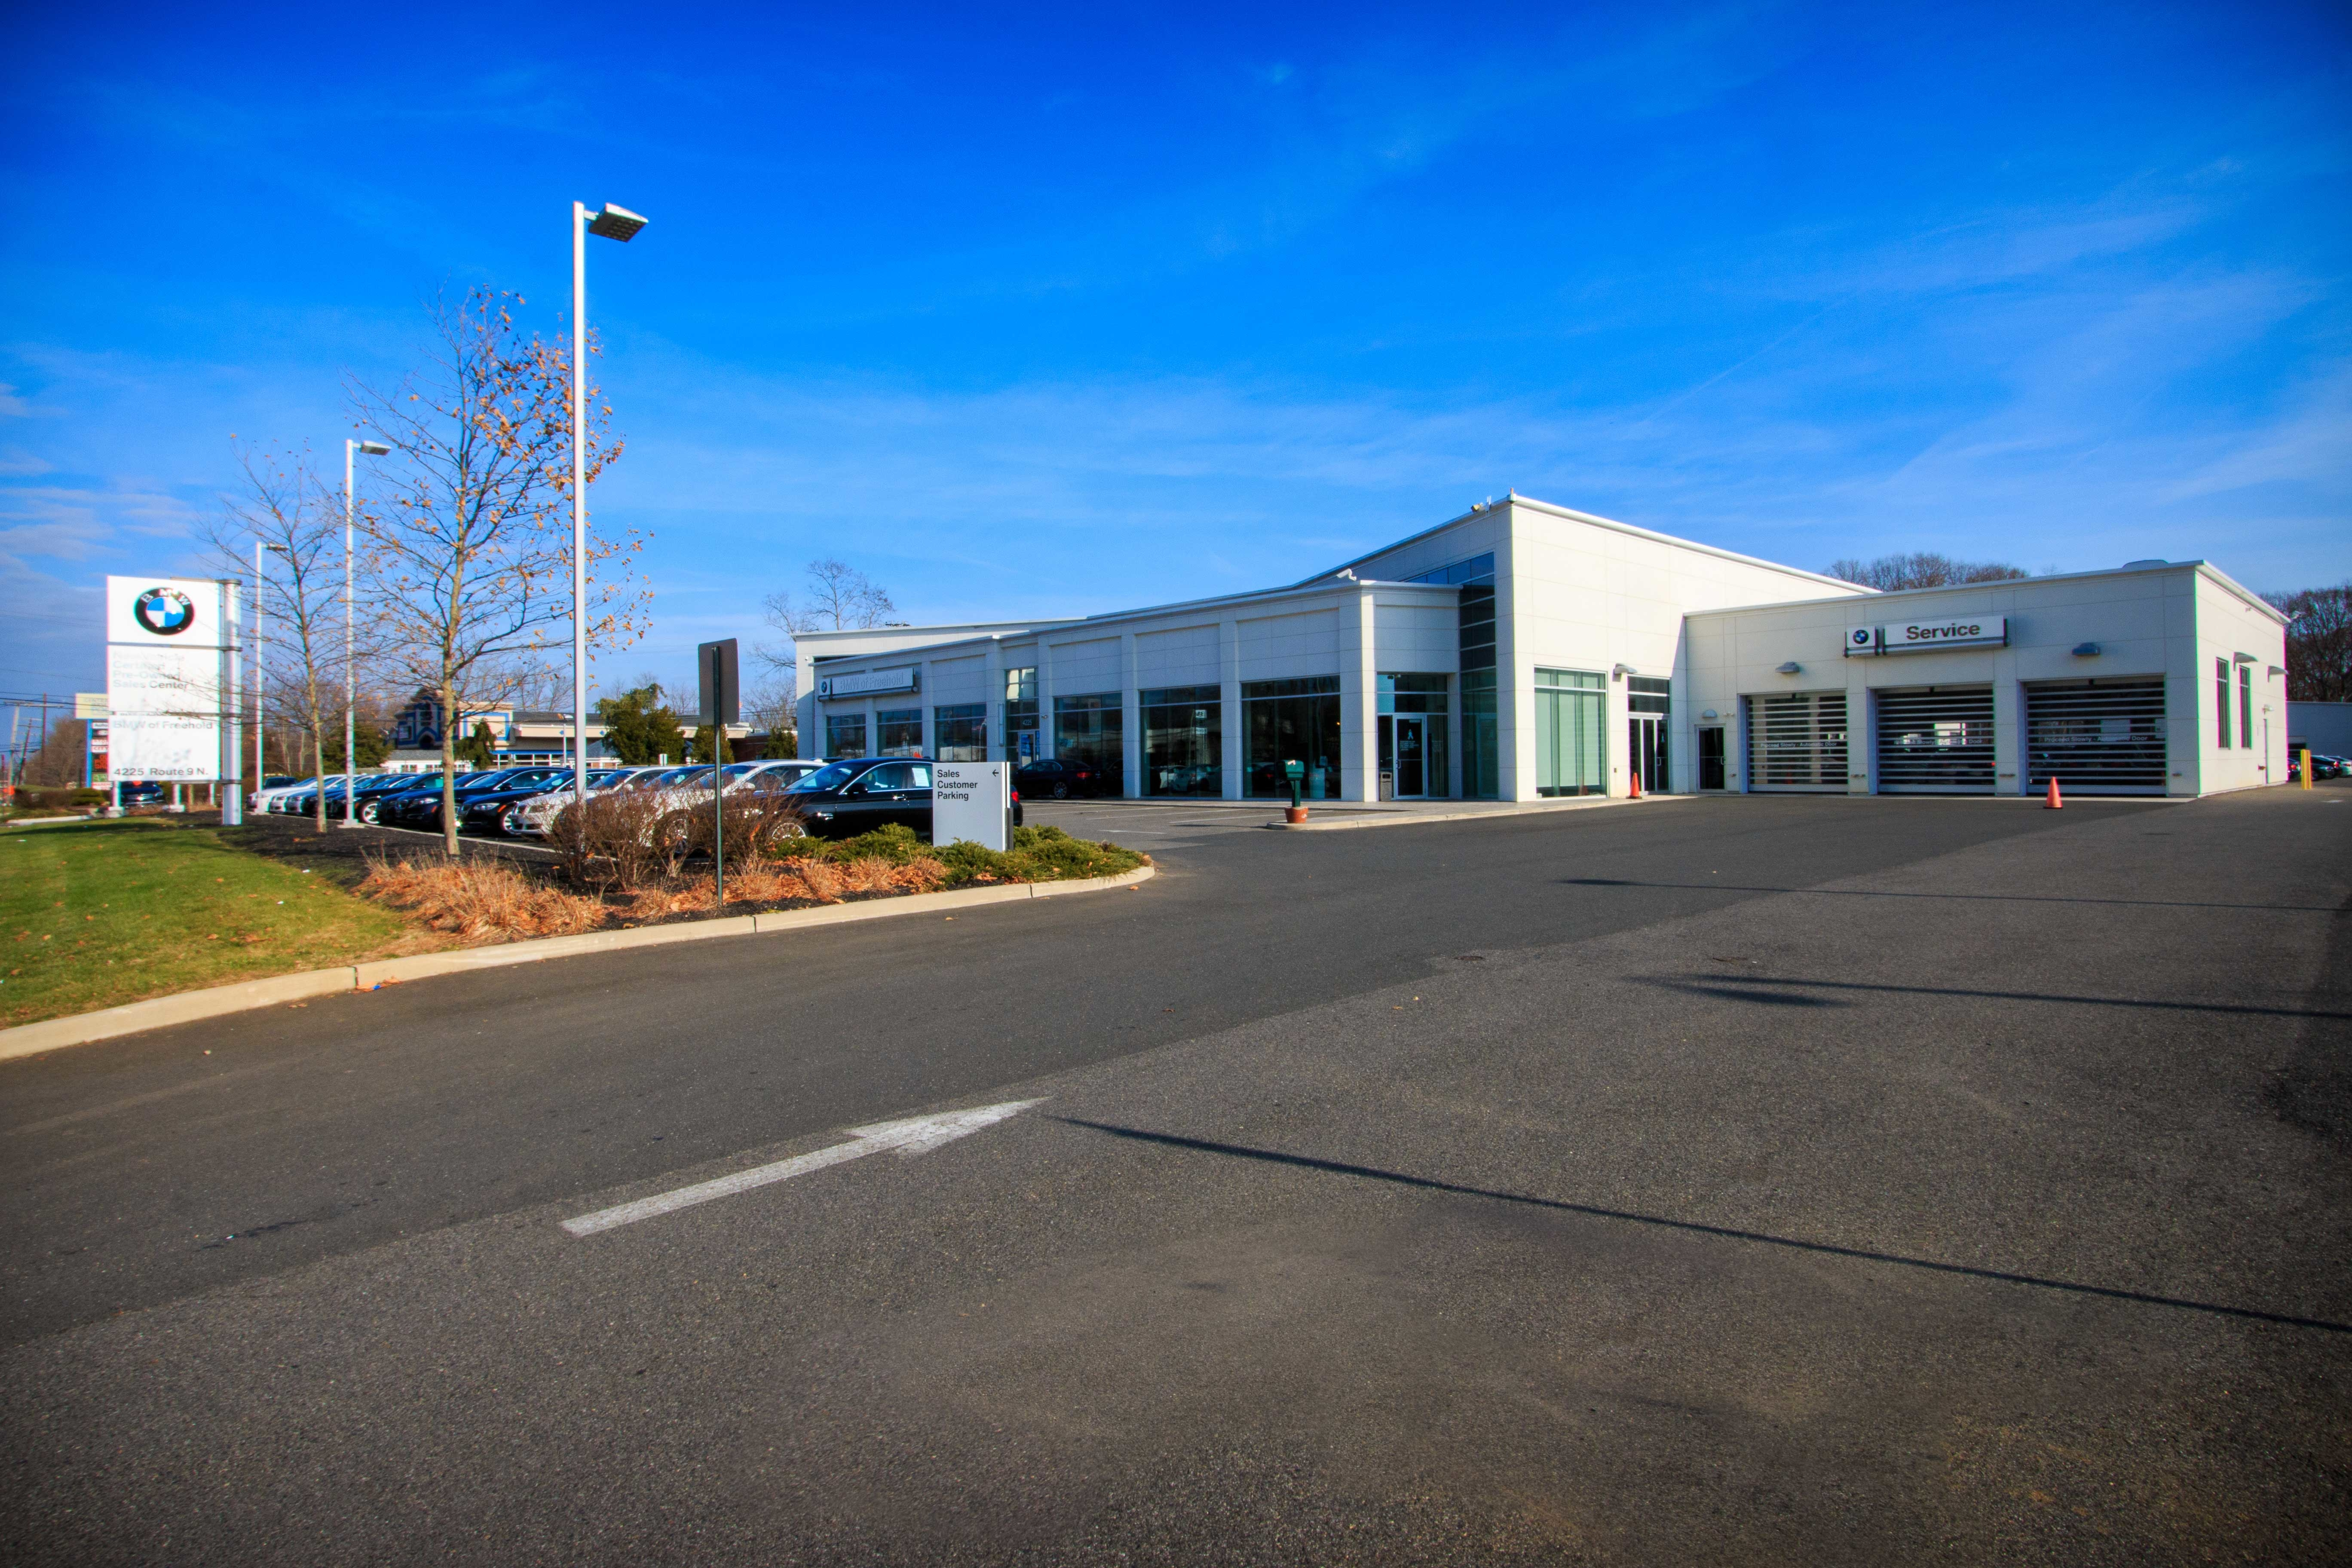 Bmw of freehold in freehold nj whitepages for Freehold motor vehicle agency